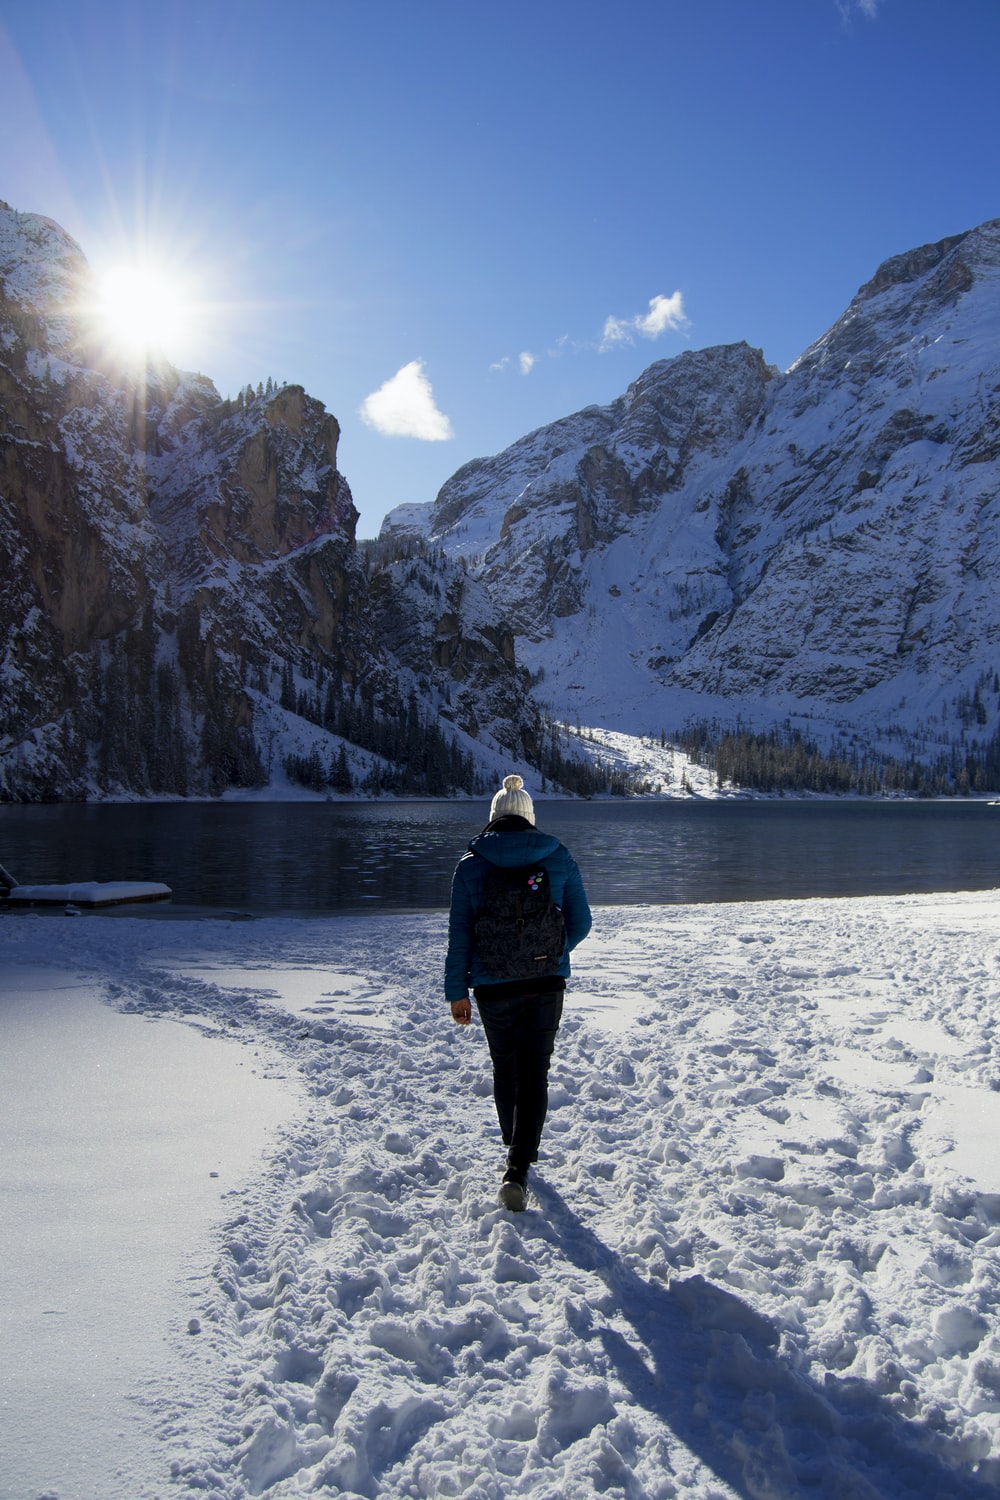 person walking on snow near body of water and mountains